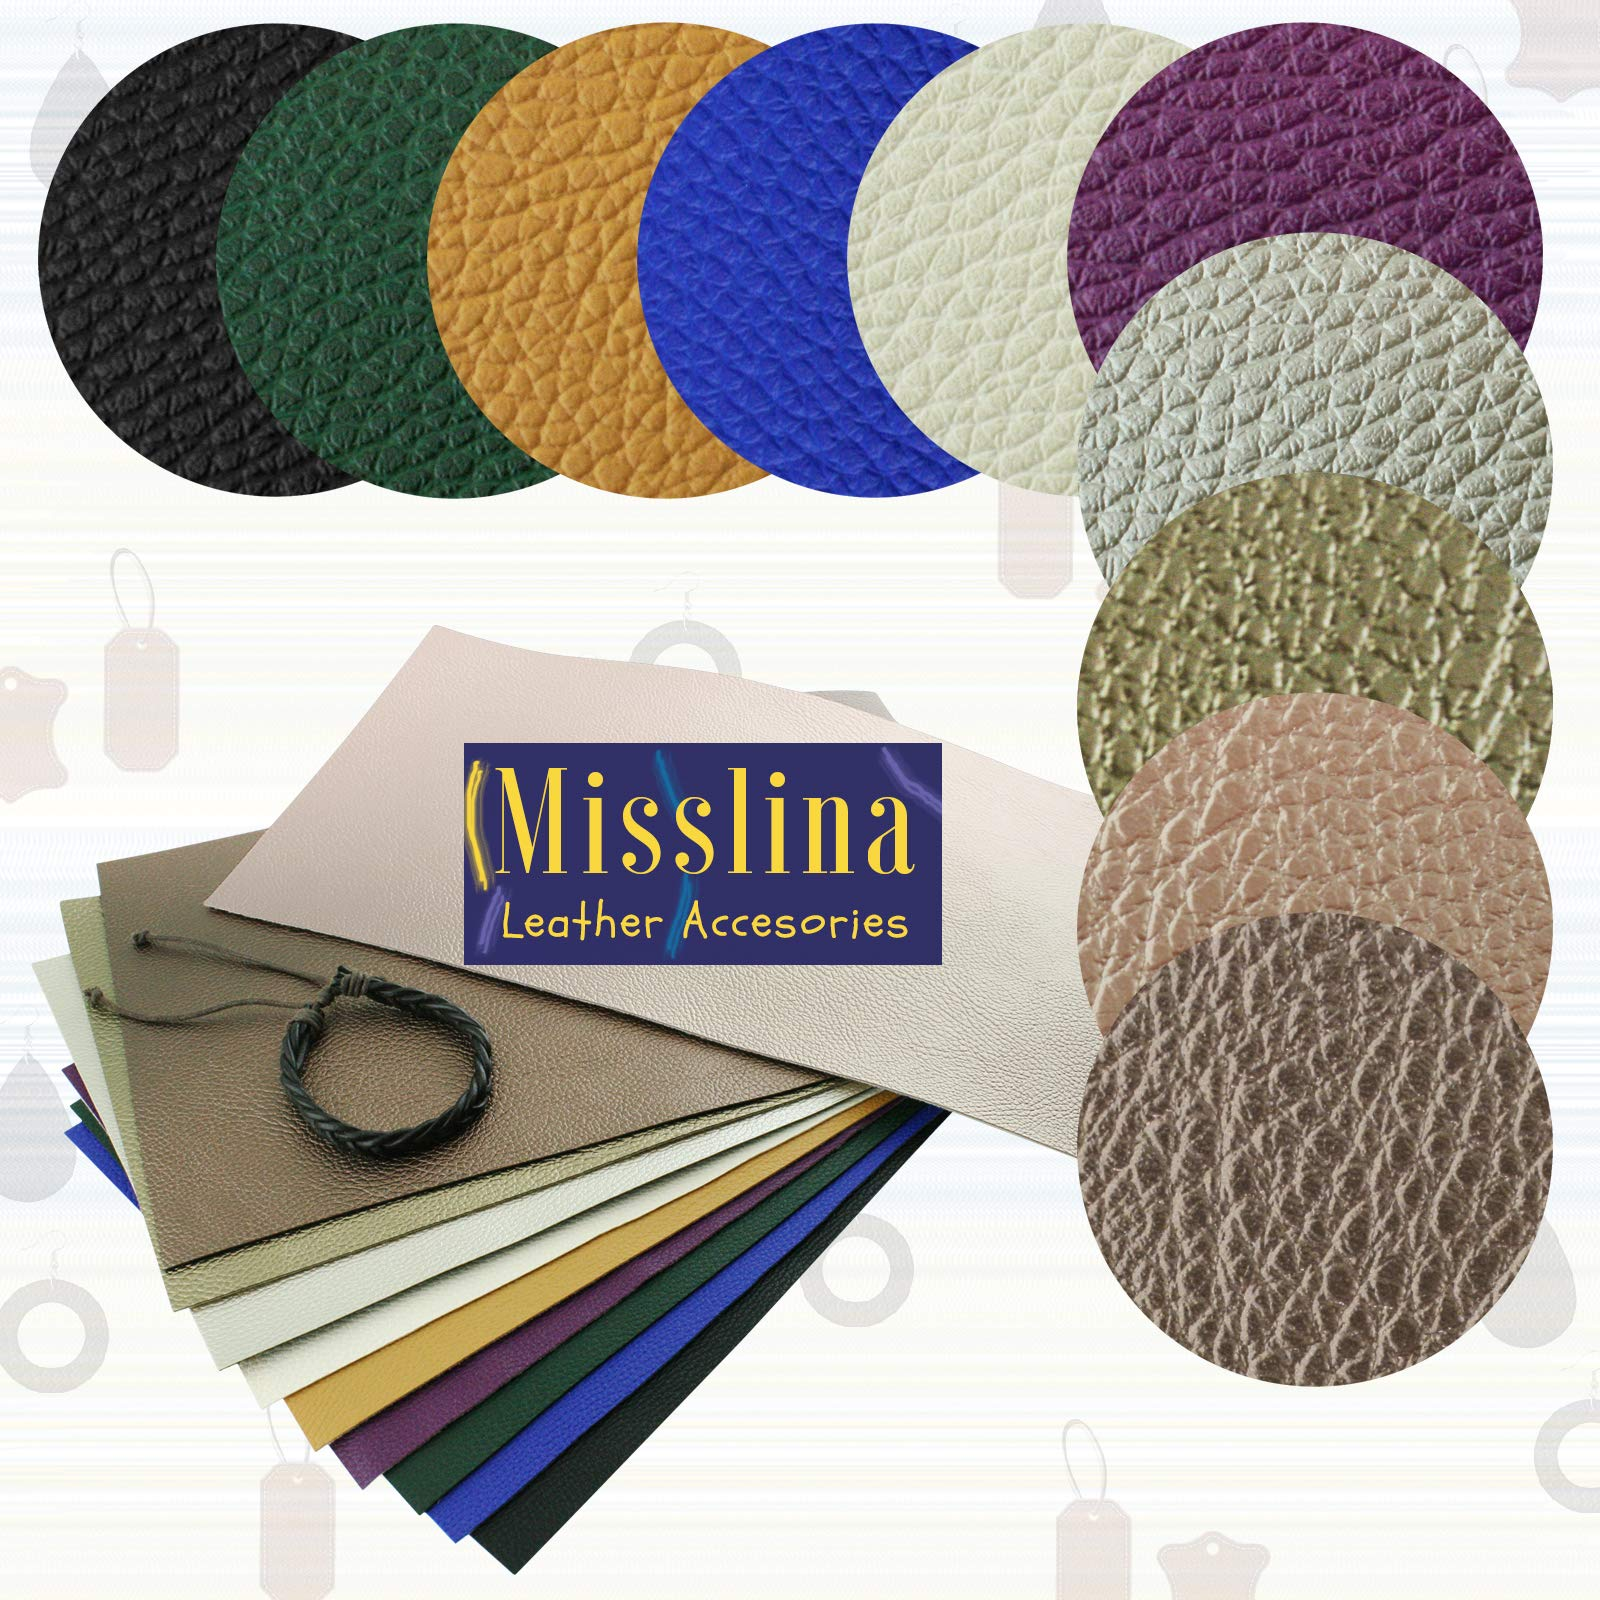 Faux Leather Sheets for Leathercraft Accesories with Cotton Fabric Back- 8'' x 13''(20 x 34 cm) Pack of 10 Faux Leather for Earring Making, Ribbon Bowls Crafts Making- 10 Colours of Faux Leather Sheets by MissLina Faux Leather Accesories (Image #8)